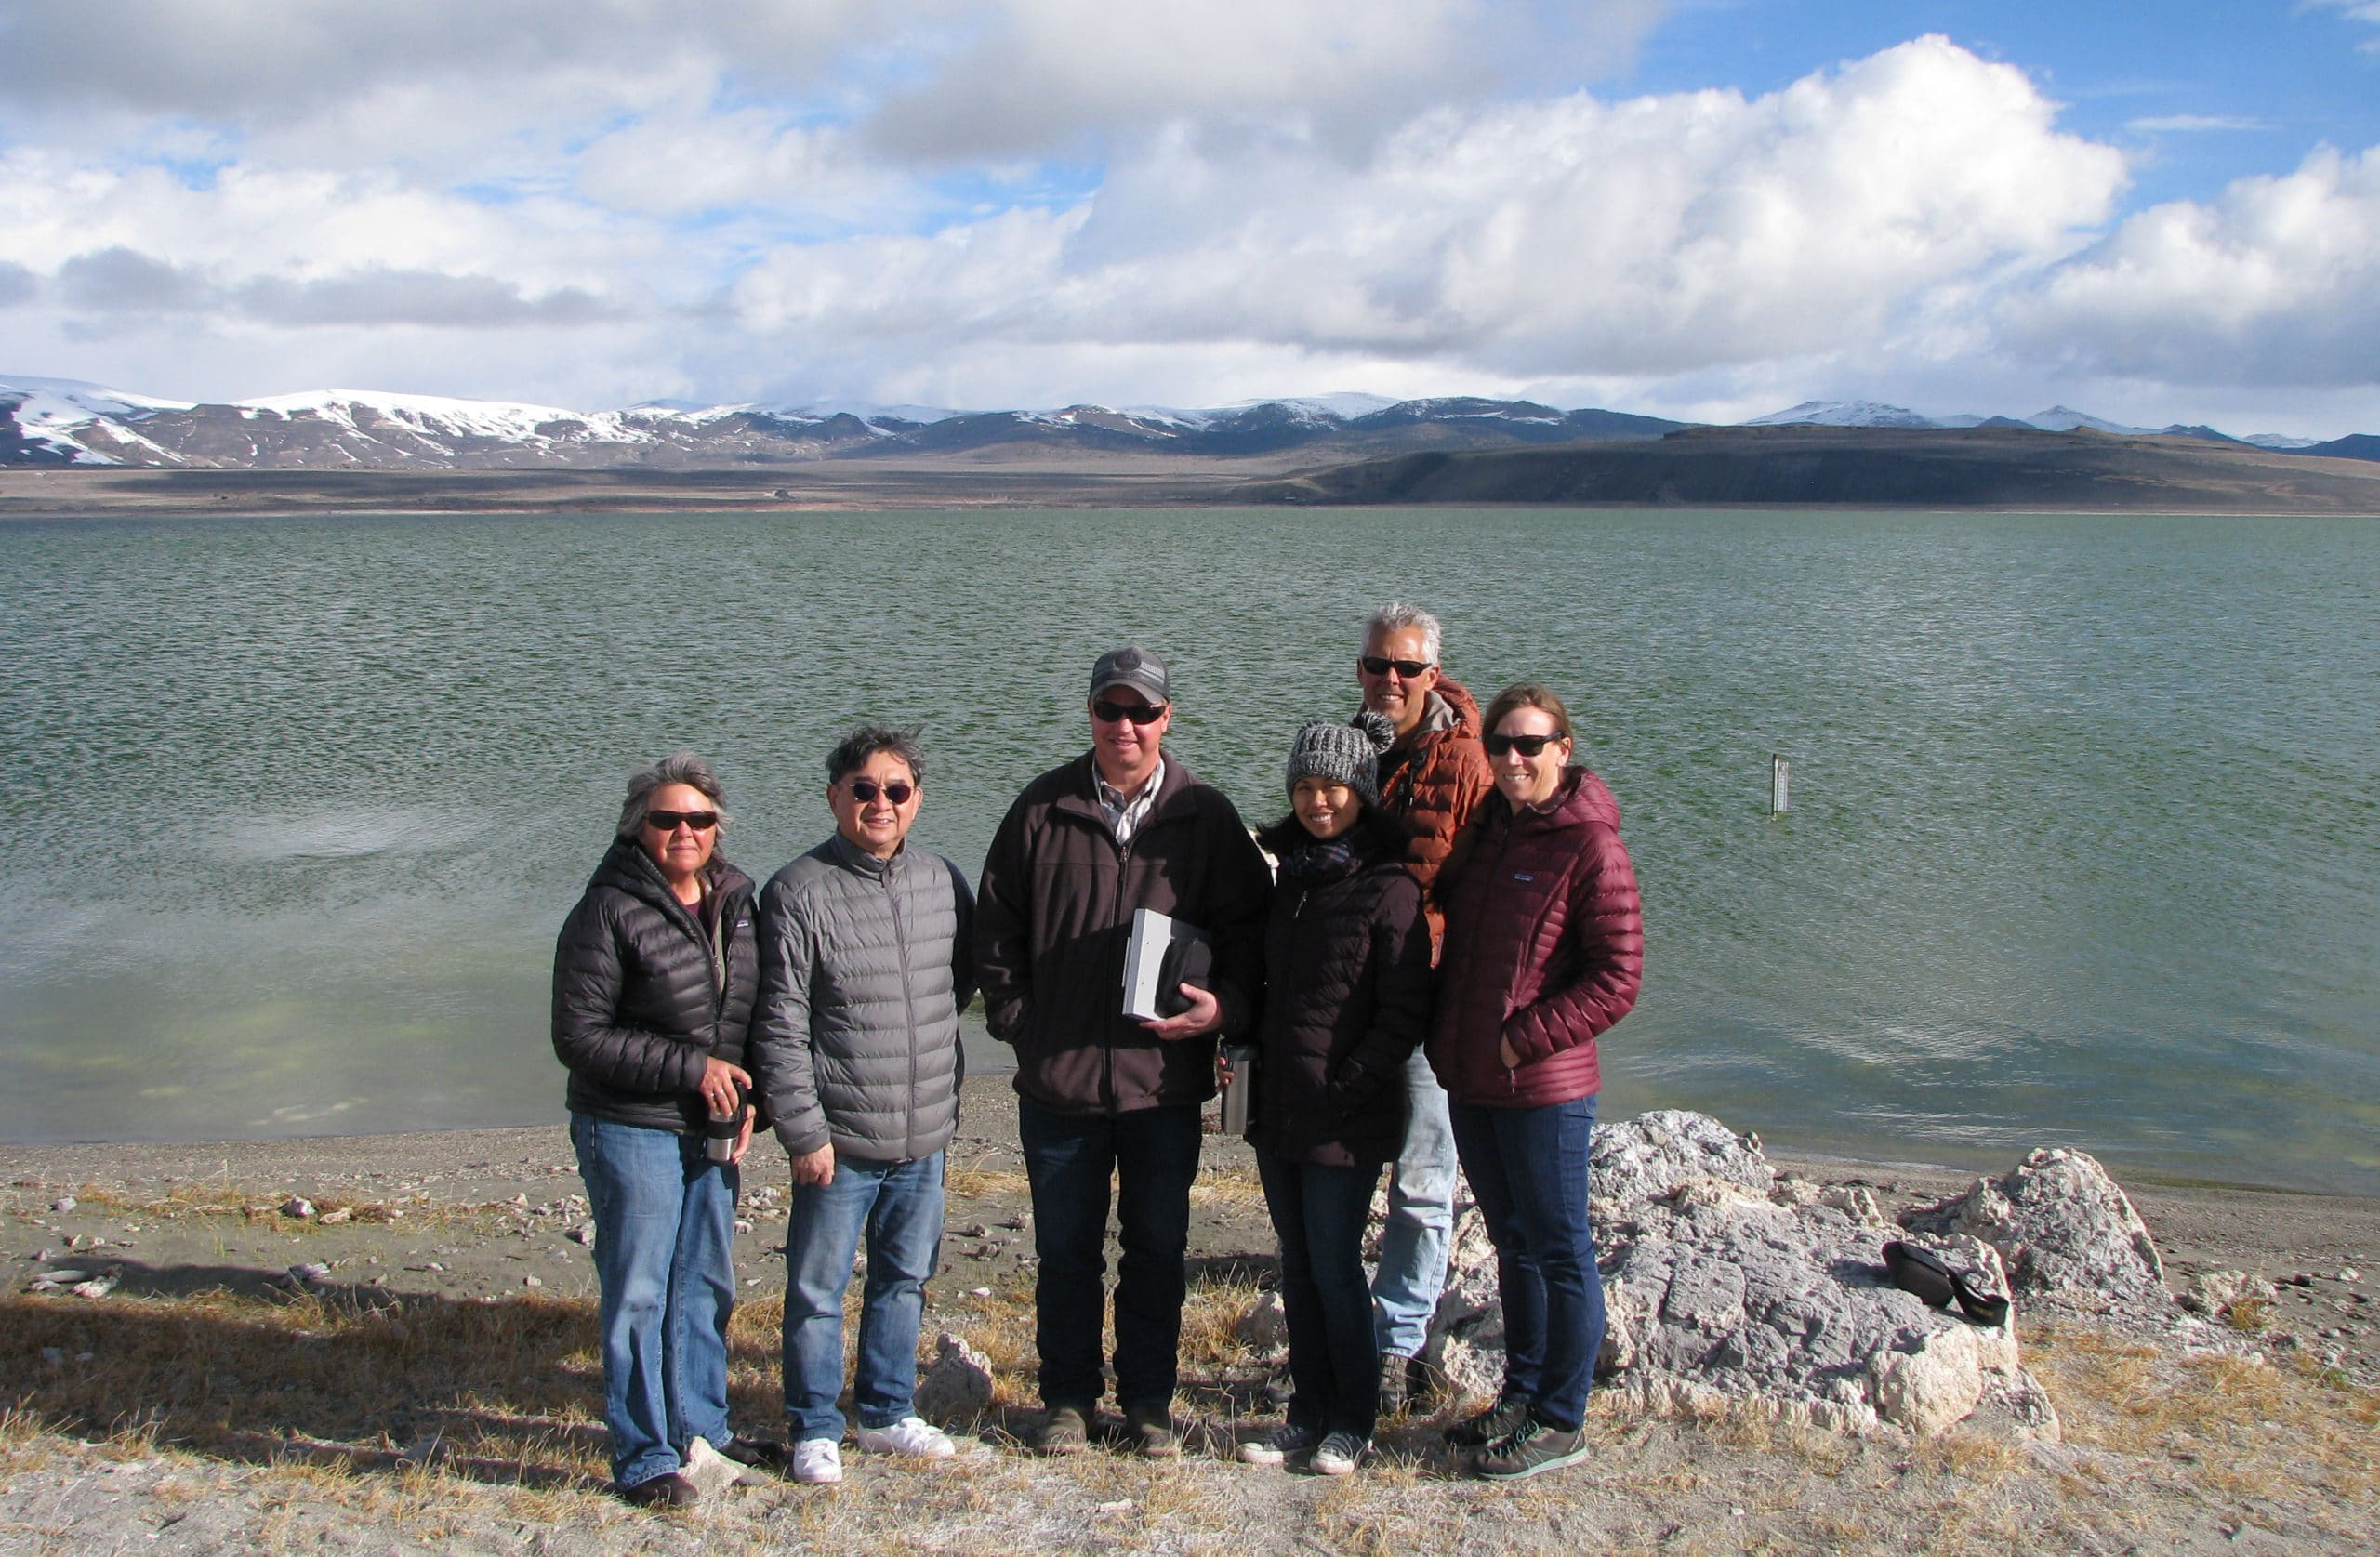 Six people standing together smiling for the camera at the shore of Mono Lake with the lake level gauge in the lake in the background and snowy hills and puffy clouds in the sky.